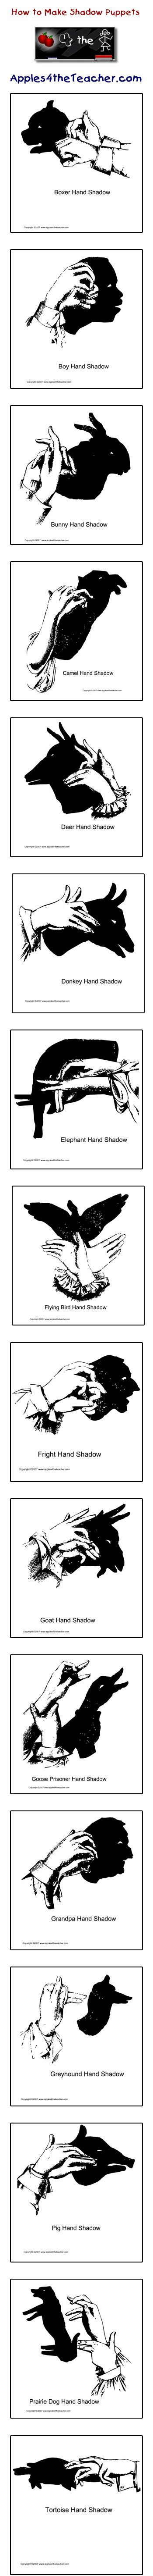 How to make different shadow puppets, Groundhog Day shadow puppets.